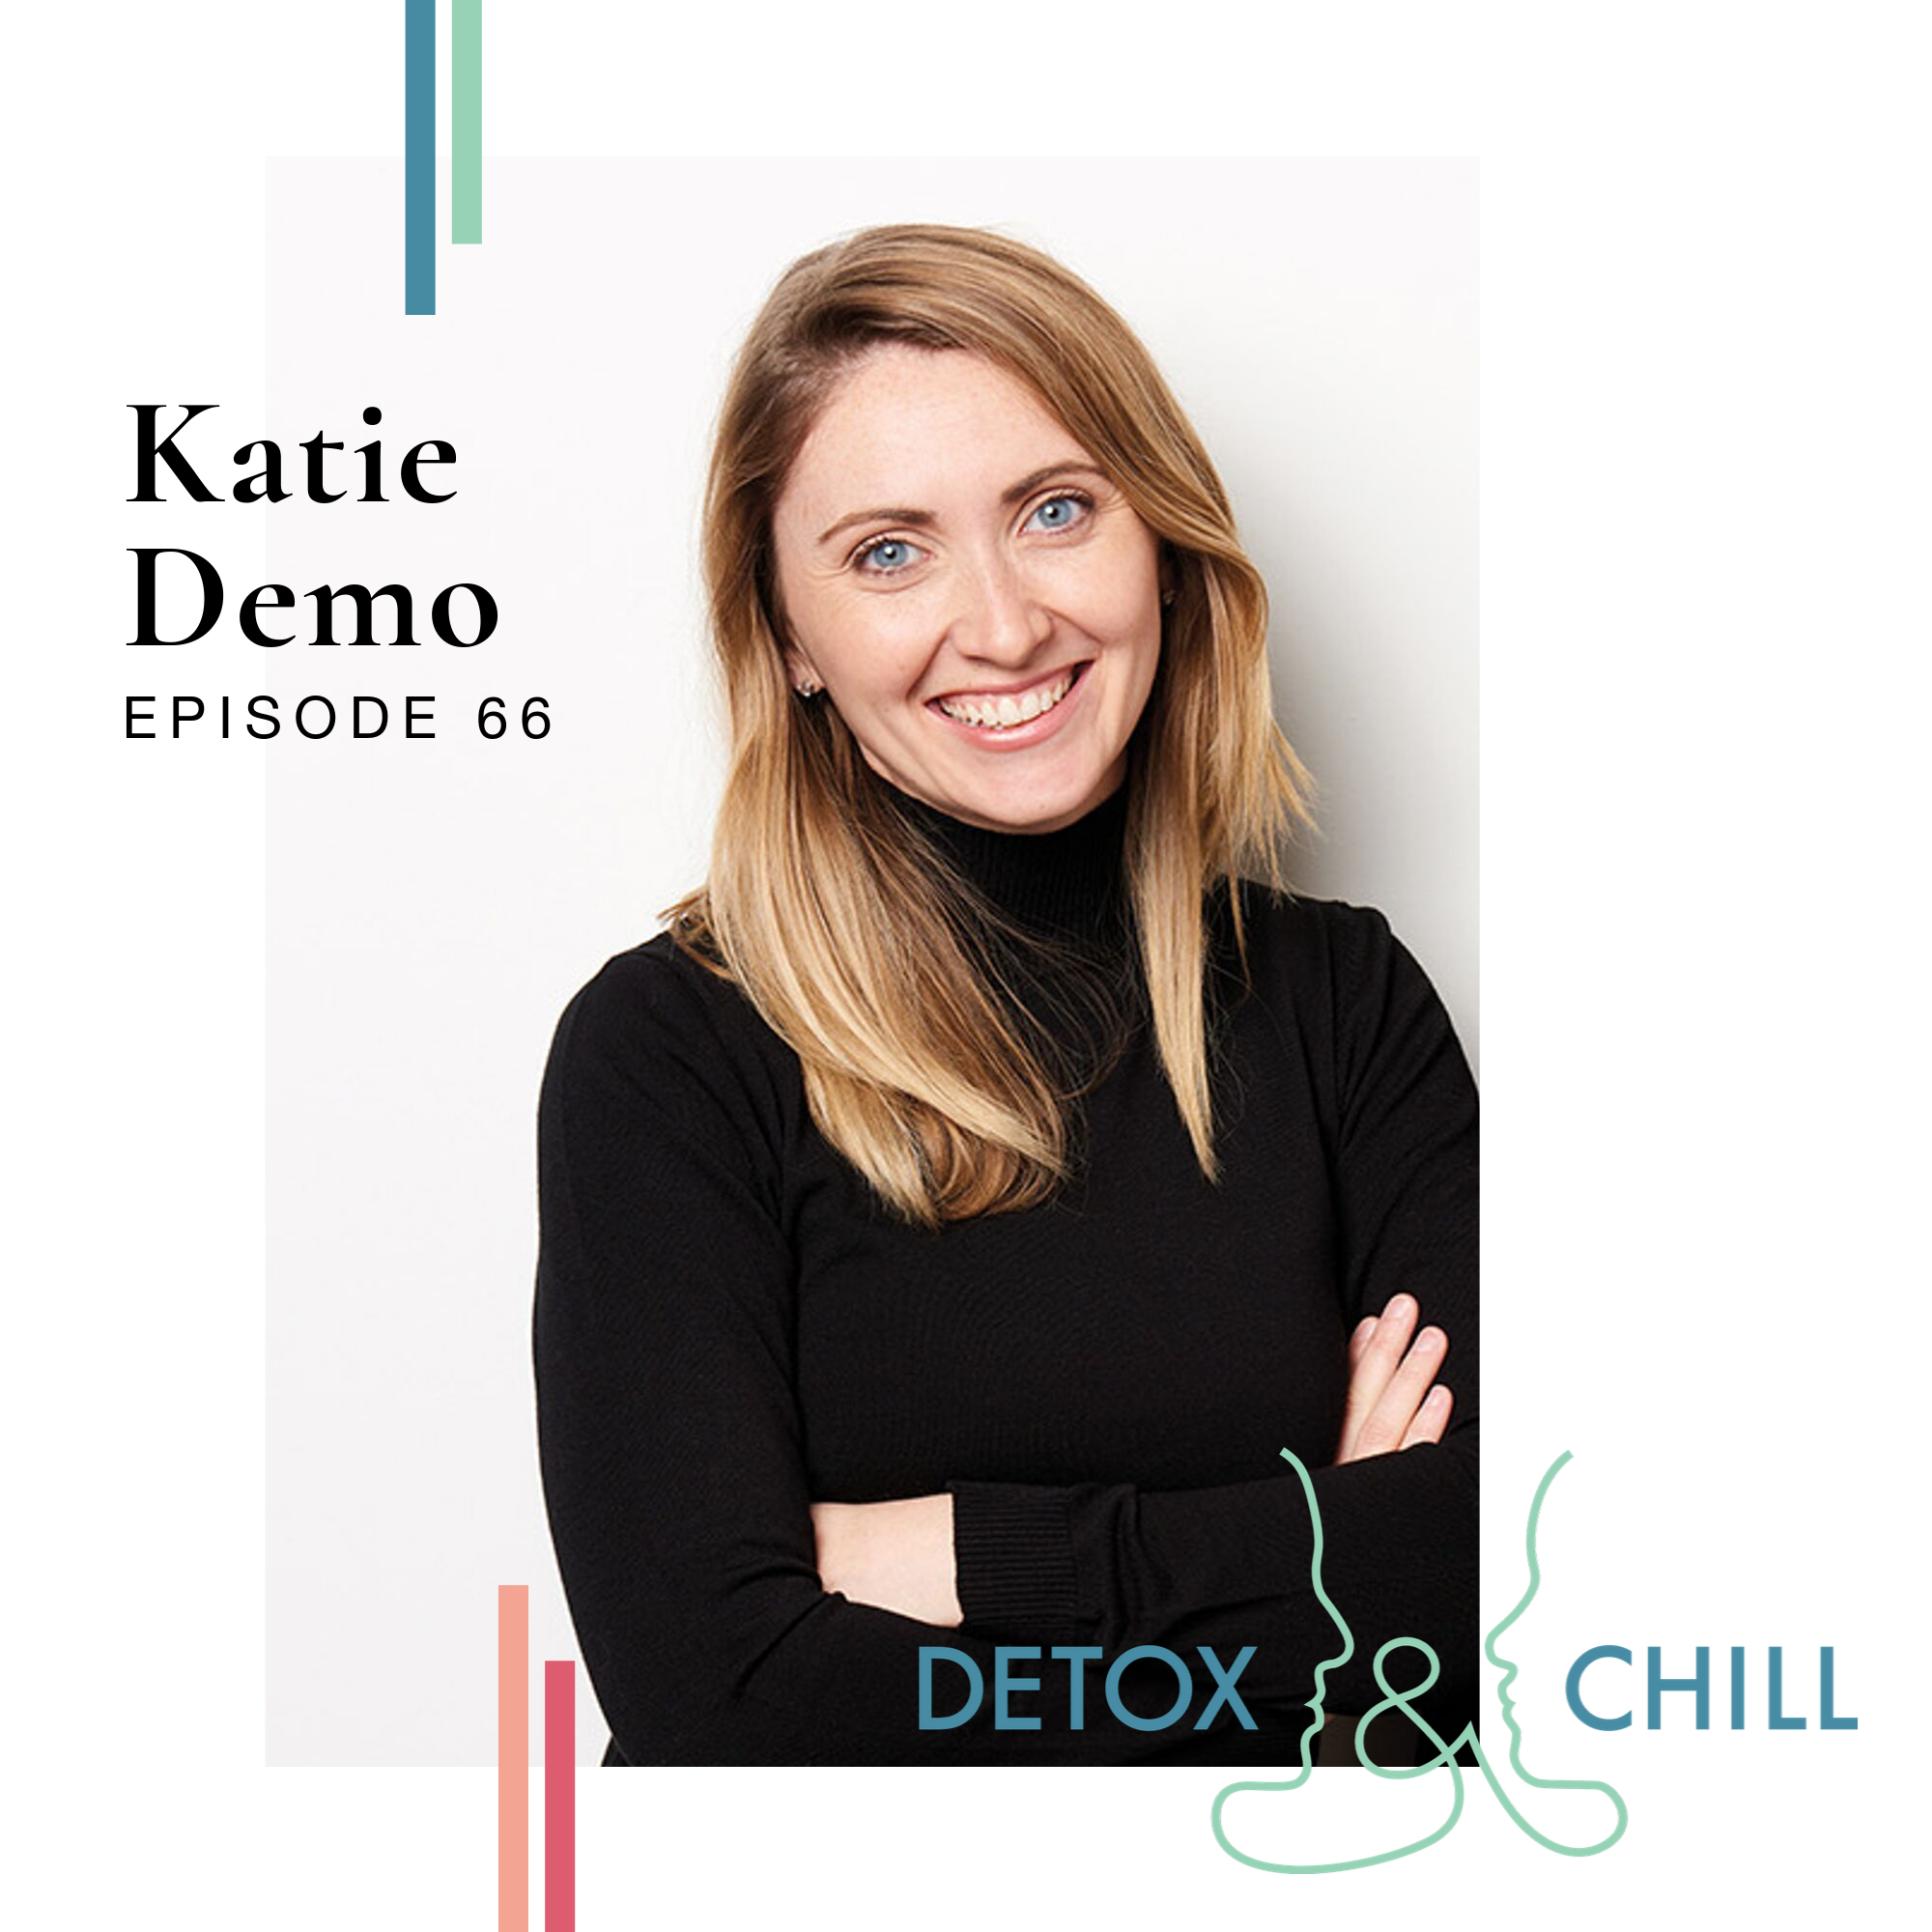 Episode #66: Katie Demo // Co-Founder of Brass Clothing // Building a Sustainable Fashion Brand - Brass Clothing is one of our favorite Boston-based clothing brands and today we have Katie Demo on the podcast!Brass Clothing was founded 3.5 years ago, when Katie and her co-founder Jay Adams were frustrated with their wardrobes. Years of shopping sales and fast fashion left them with closets full of clothes that never fit quite right or felt like good quality.They knew they needed better options, and they set out to provide women with higher quality clothing with a more reasonable price tag.They didn't know it at the time, but they would spend the next 3.5 years talking to women about their wardrobes and the impact they have on our lives.In this episode we talk about…-Working a full time job while also nurturing your side hustle;-Building trust in your team to manage the business and take steps back;-Sustainability and the difference between Brass and fast fashion brands;-The ups and downs of entrepreneurship.We know you'll love this episode just as much as we do. We'd love to continue the conversation with you on our secret Facebook page, so head to www.detoxandchillpodcast.com/join to join us!Find Brass Clothing here:Website: https://brassclothing.comIG: https://www.instagram.com/brassclothing/Find us on Instagram @detoxandchillpodcast and our website.Also, don't forgot to rate and review on iTunes, Spotify, or wherever you're listening to this. The reviews mean the world to us and we thank you so much for taking the time to write them!xoxo,Meg & Beck